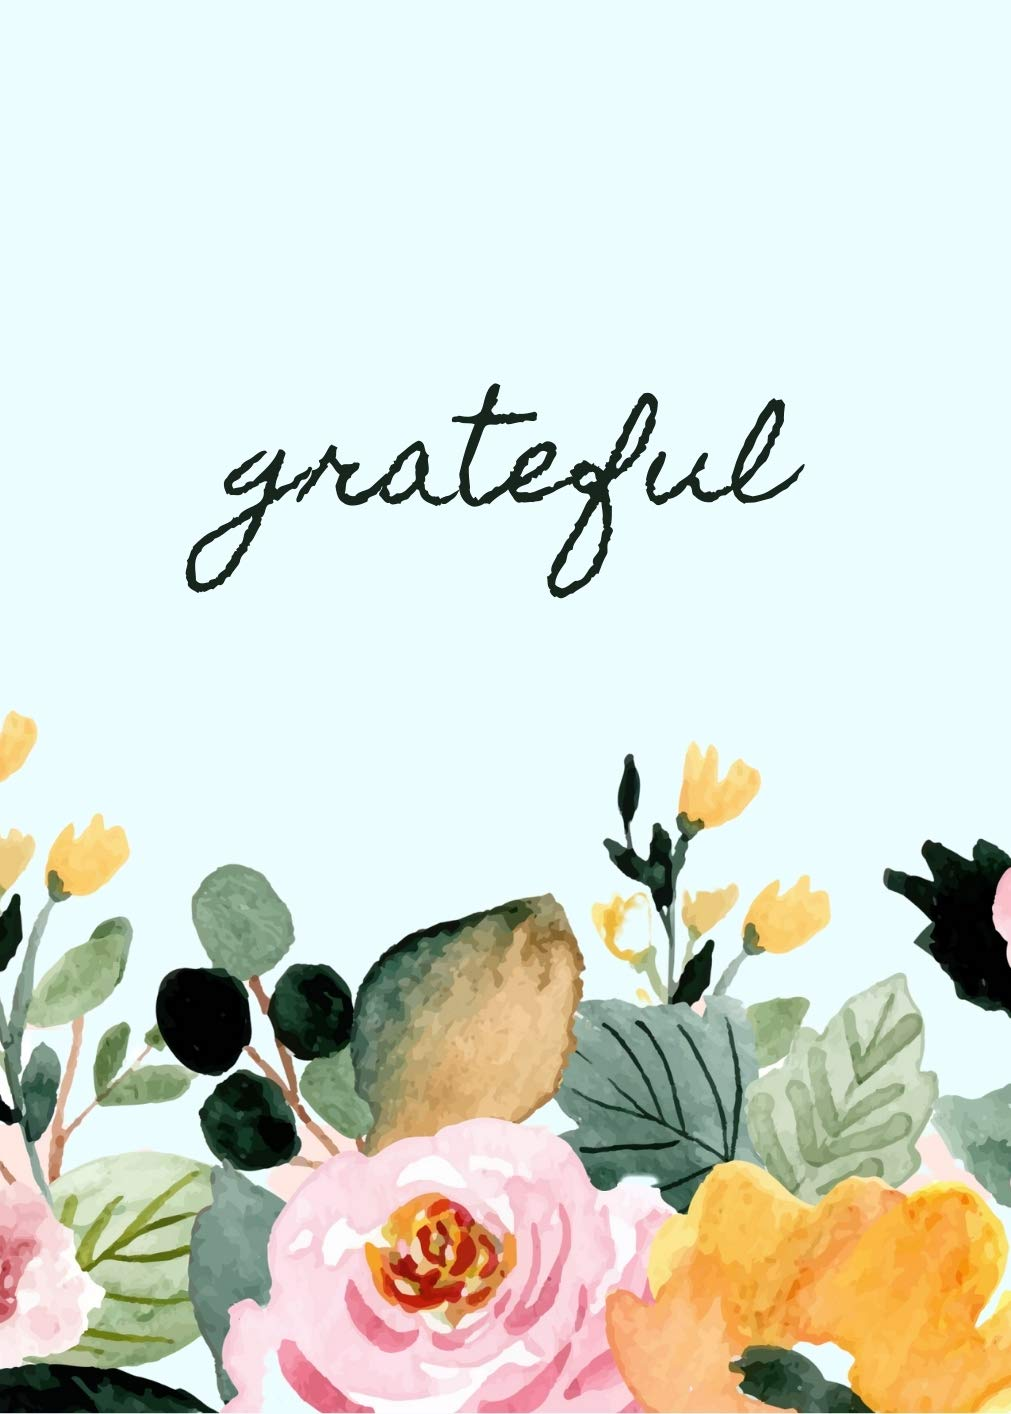 Grateful: A Daily Journal to Cultivate Calm, Peace, Happiness & Gratitude